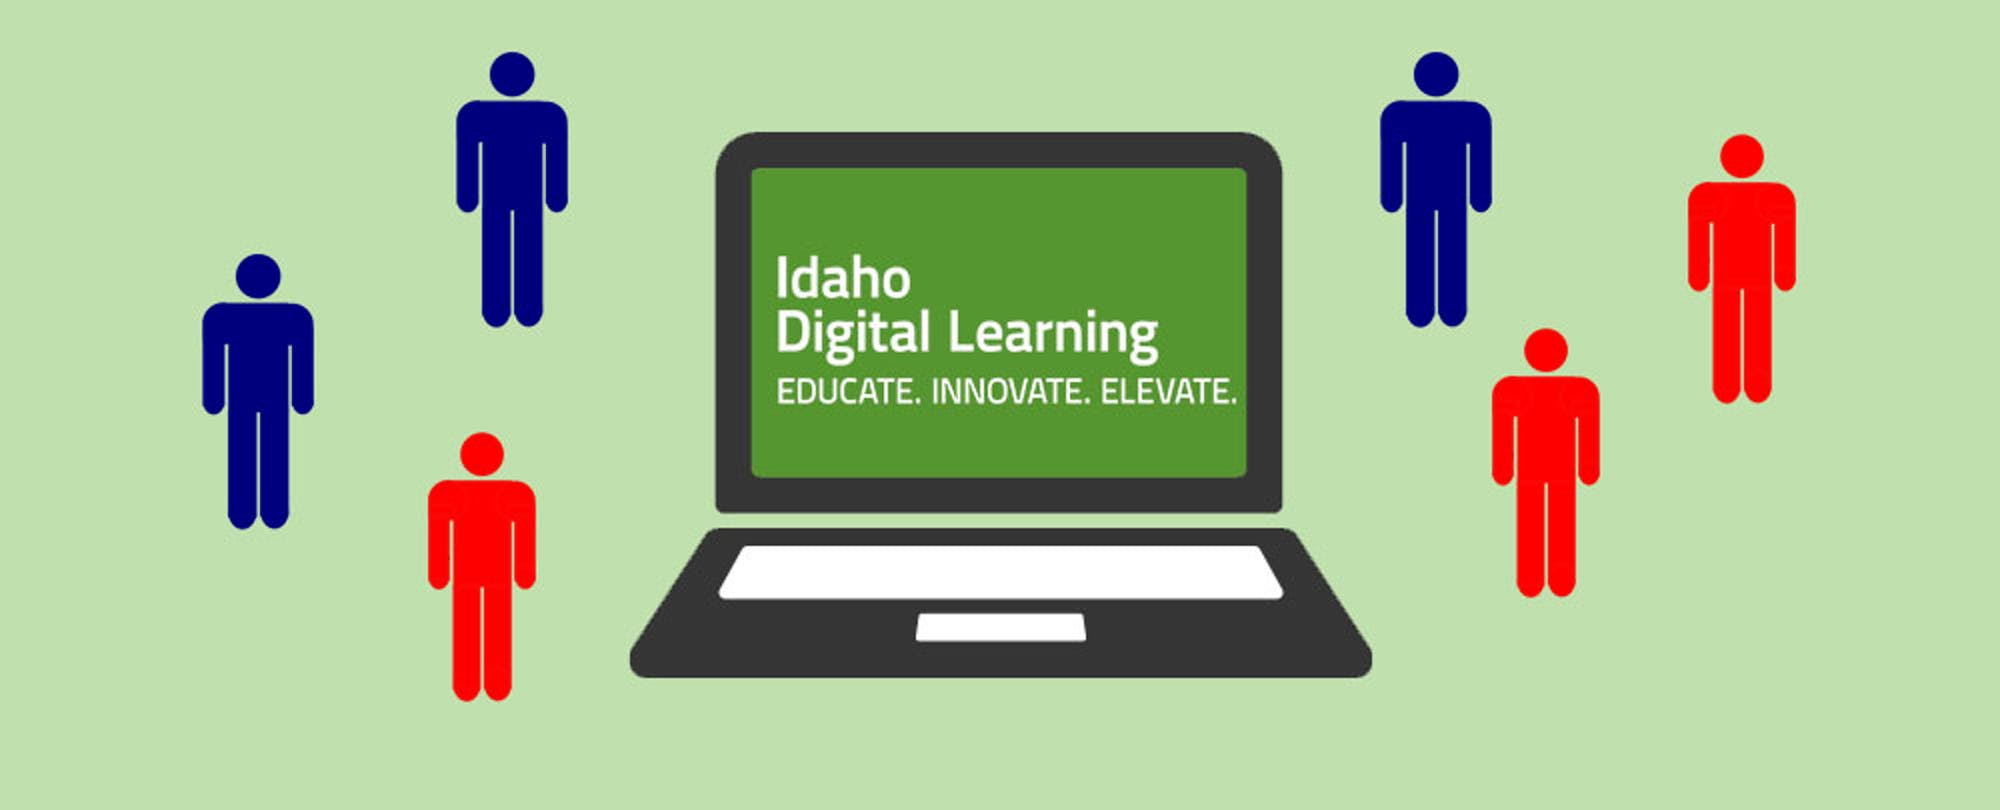 Looking to Eliminate Dropouts? How Idaho Reached English Language Learners with a 'Hybrid' Course Experiment